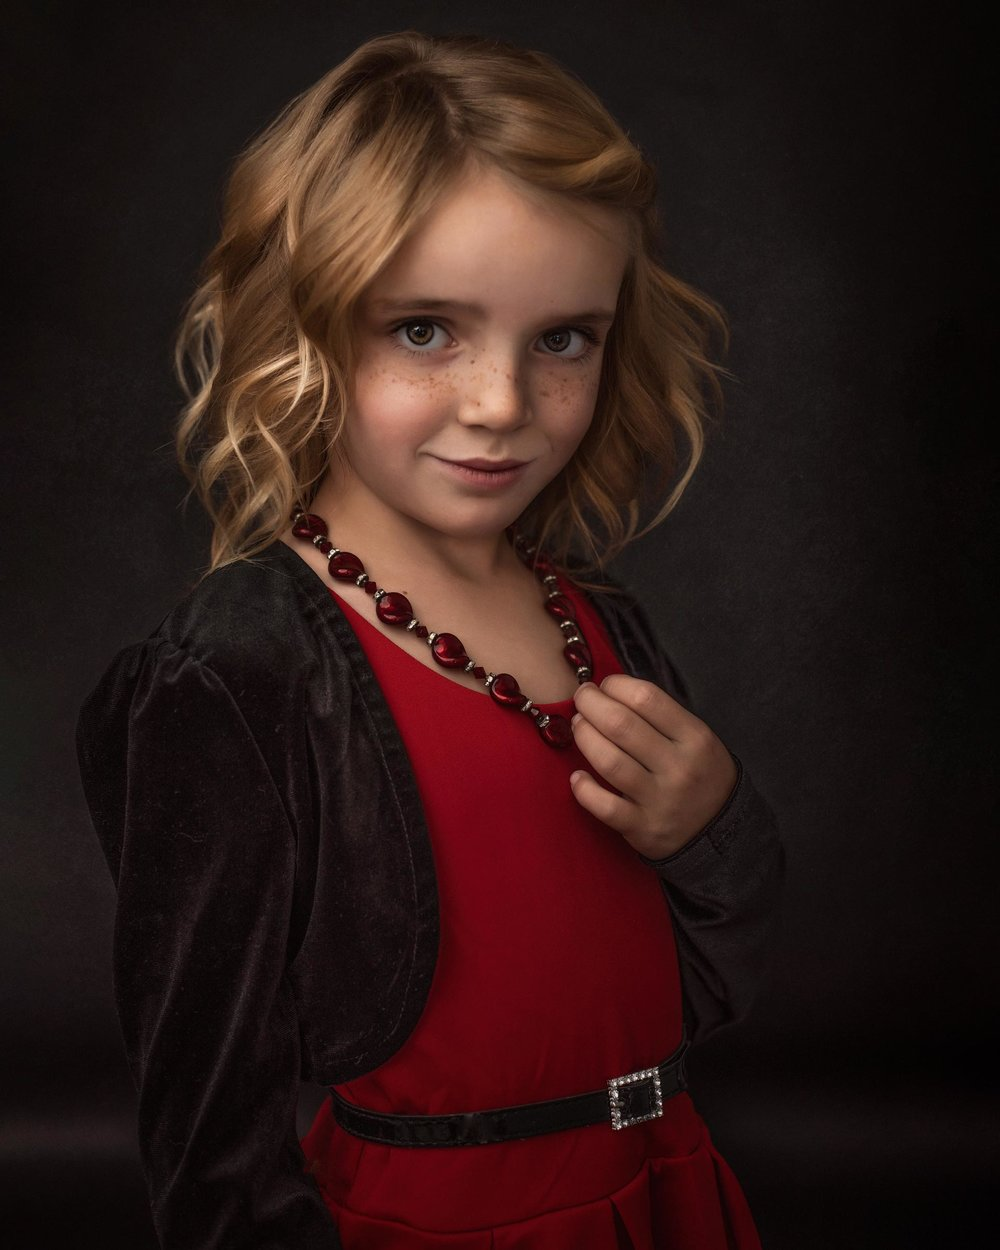 barbara_macferrin_photography_boulder_colorado_80303_fine_art_children_red_dress.jpg